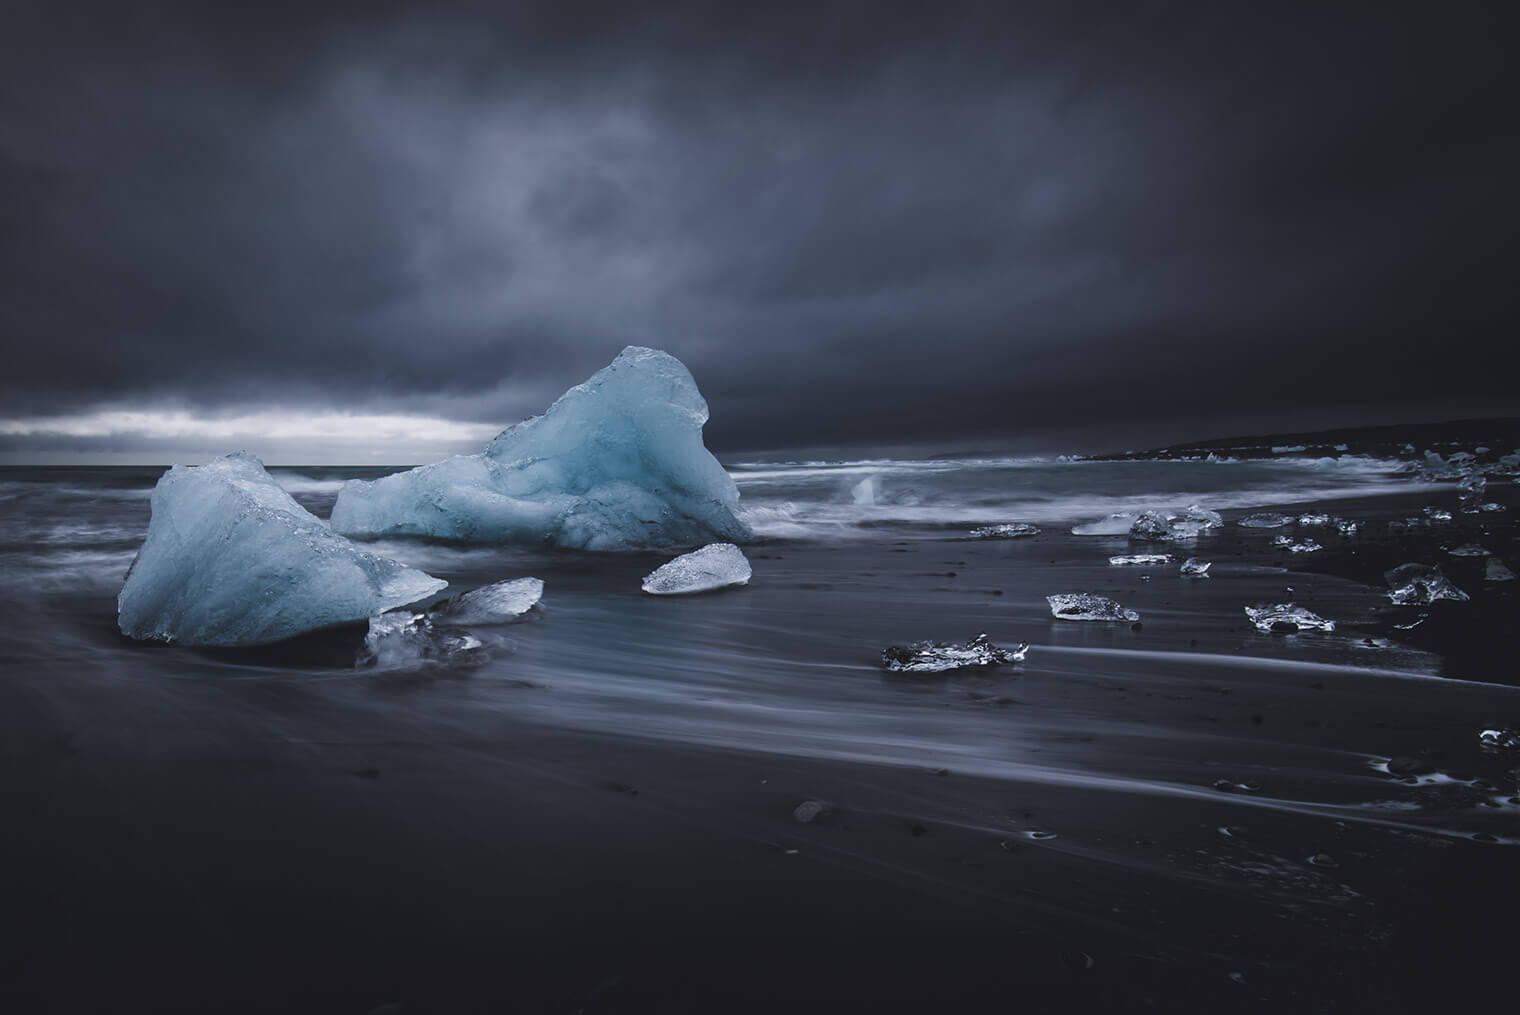 Northlandscapes – Atmospheric landscape photography of the North by Jan Erik Waider based in Hamburg